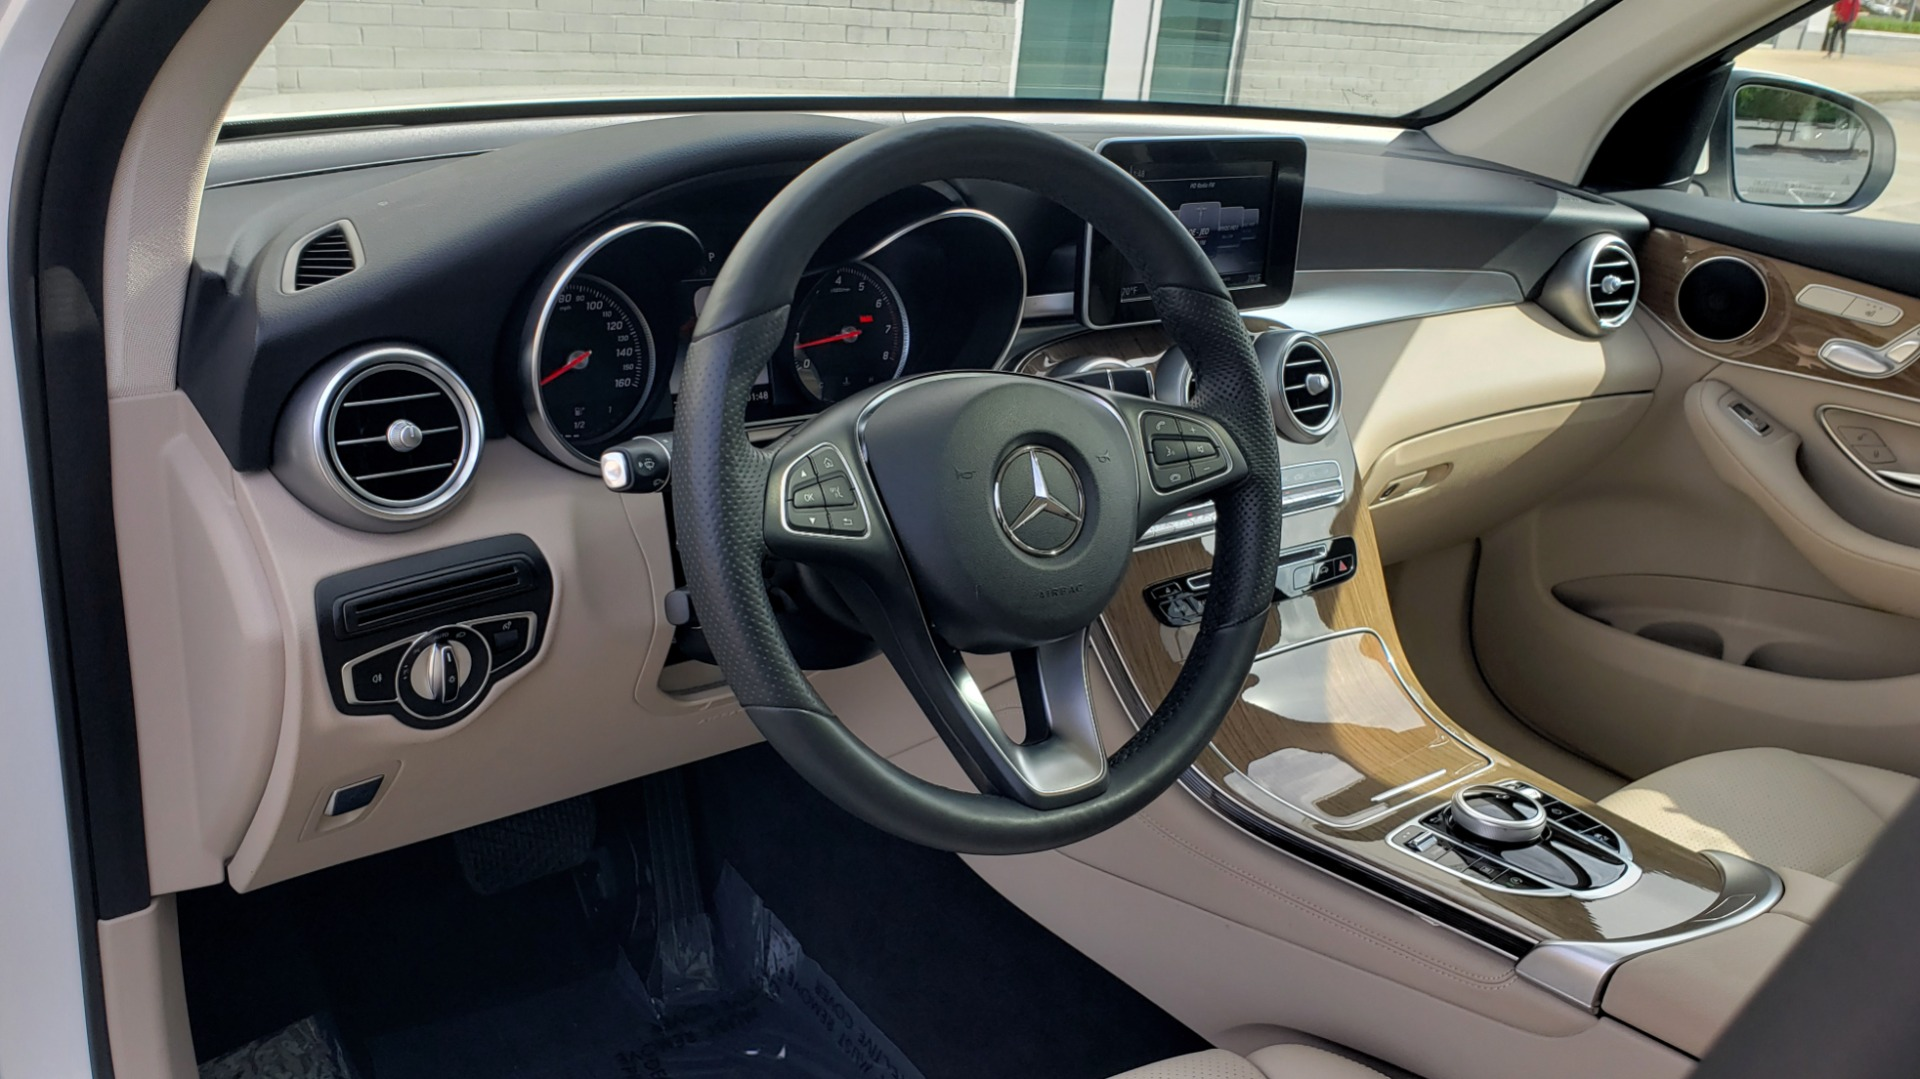 Used 2018 Mercedes-Benz GLC 300 4MATIC / PREM PKG / PANO-ROOF / APPLE / REARVIEW for sale $33,397 at Formula Imports in Charlotte NC 28227 37